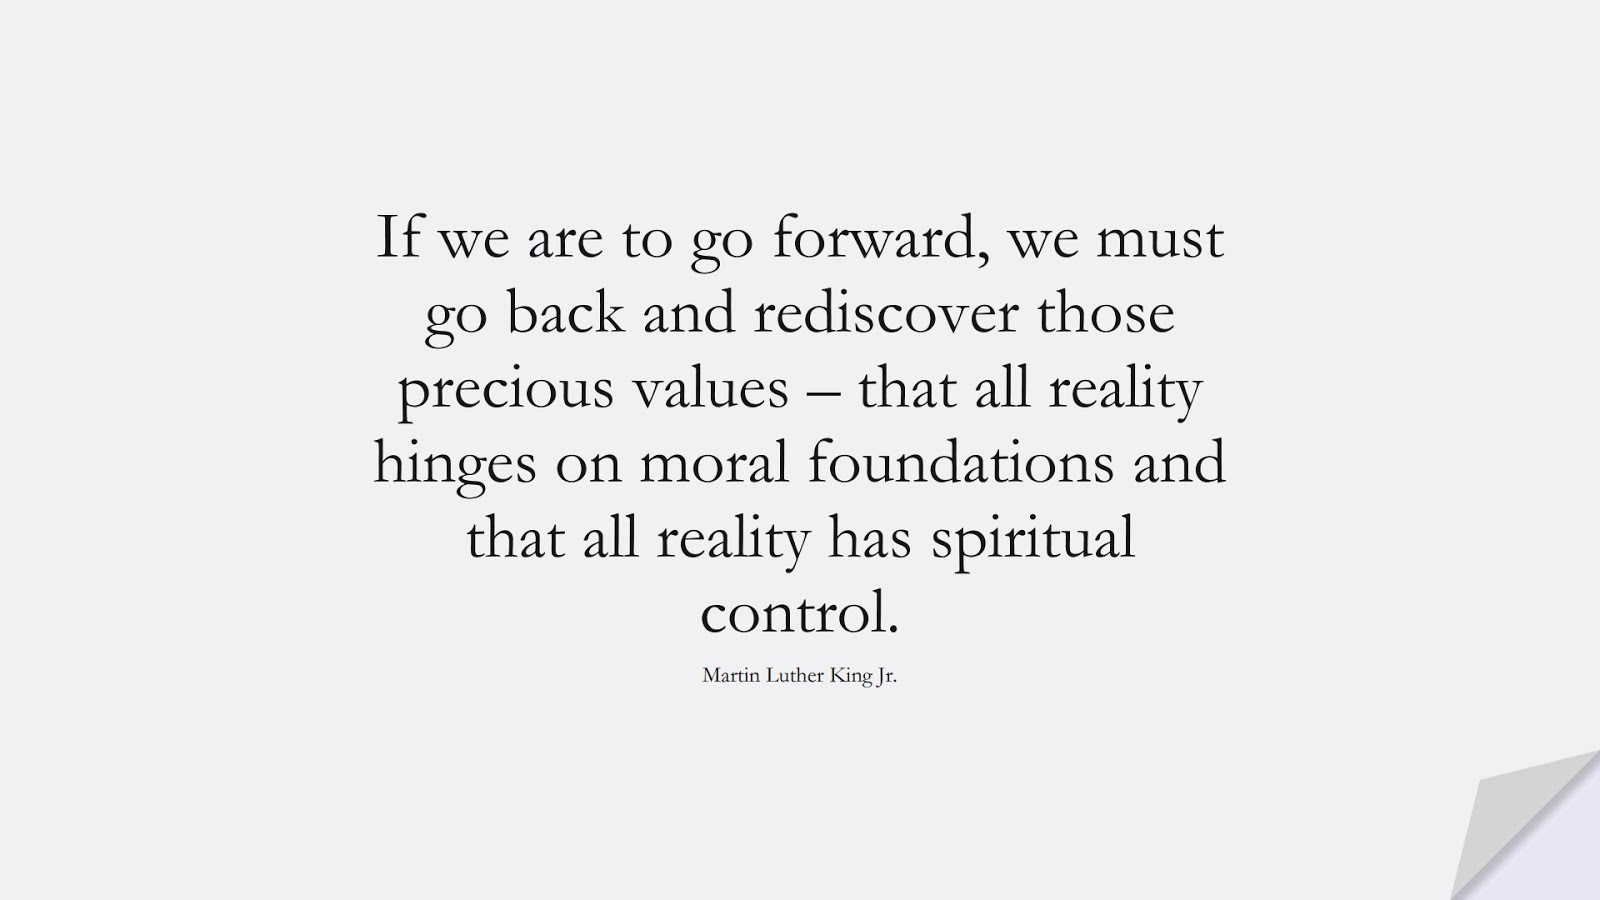 If we are to go forward, we must go back and rediscover those precious values – that all reality hinges on moral foundations and that all reality has spiritual control. (Martin Luther King Jr.);  #MartinLutherKingJrQuotes